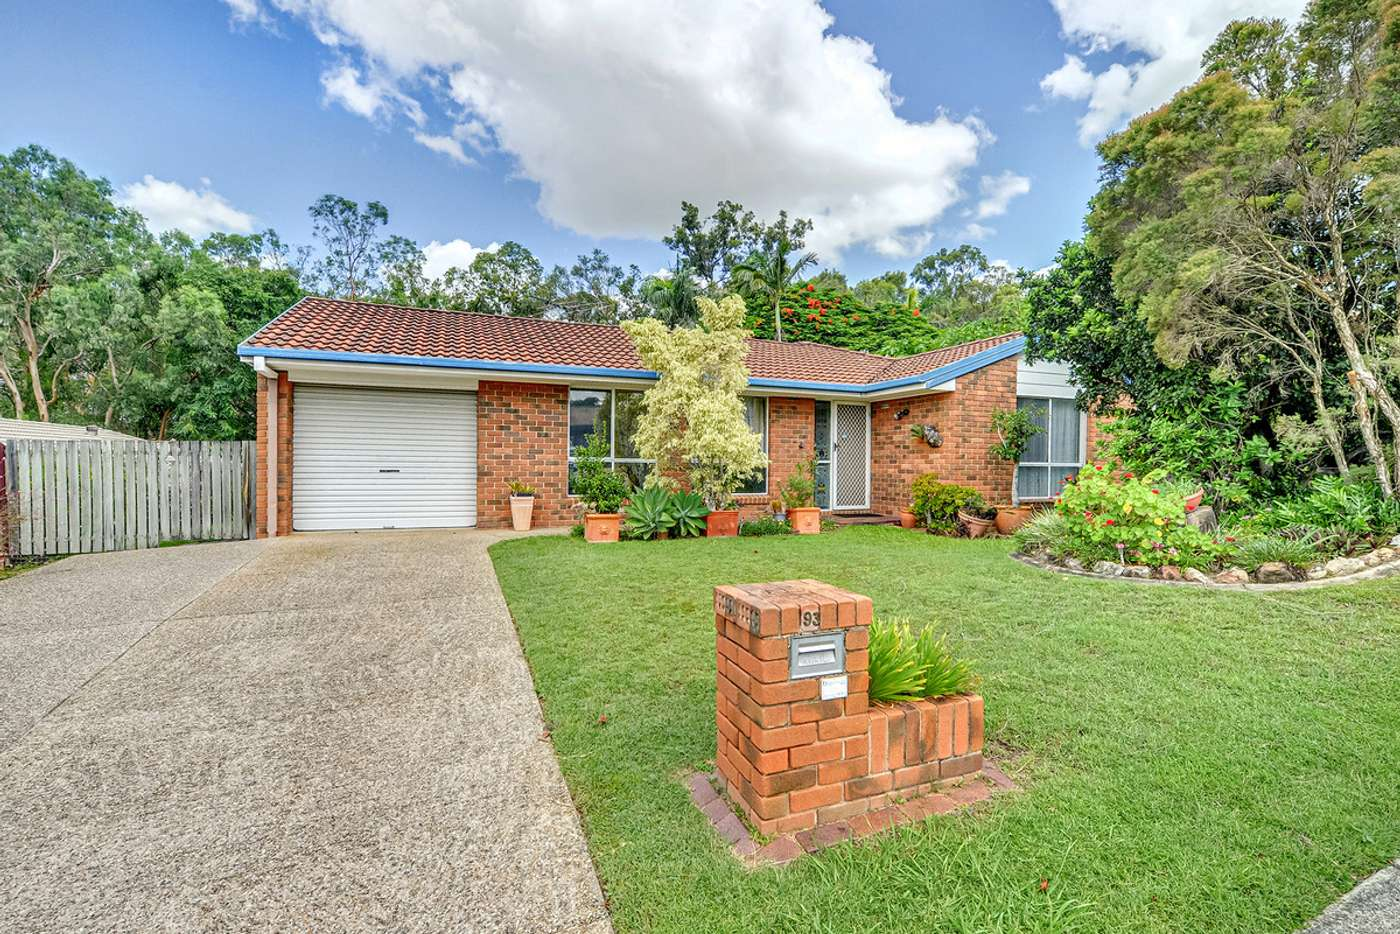 Main view of Homely house listing, 93 Dove Tree Crescent, Sinnamon Park QLD 4073